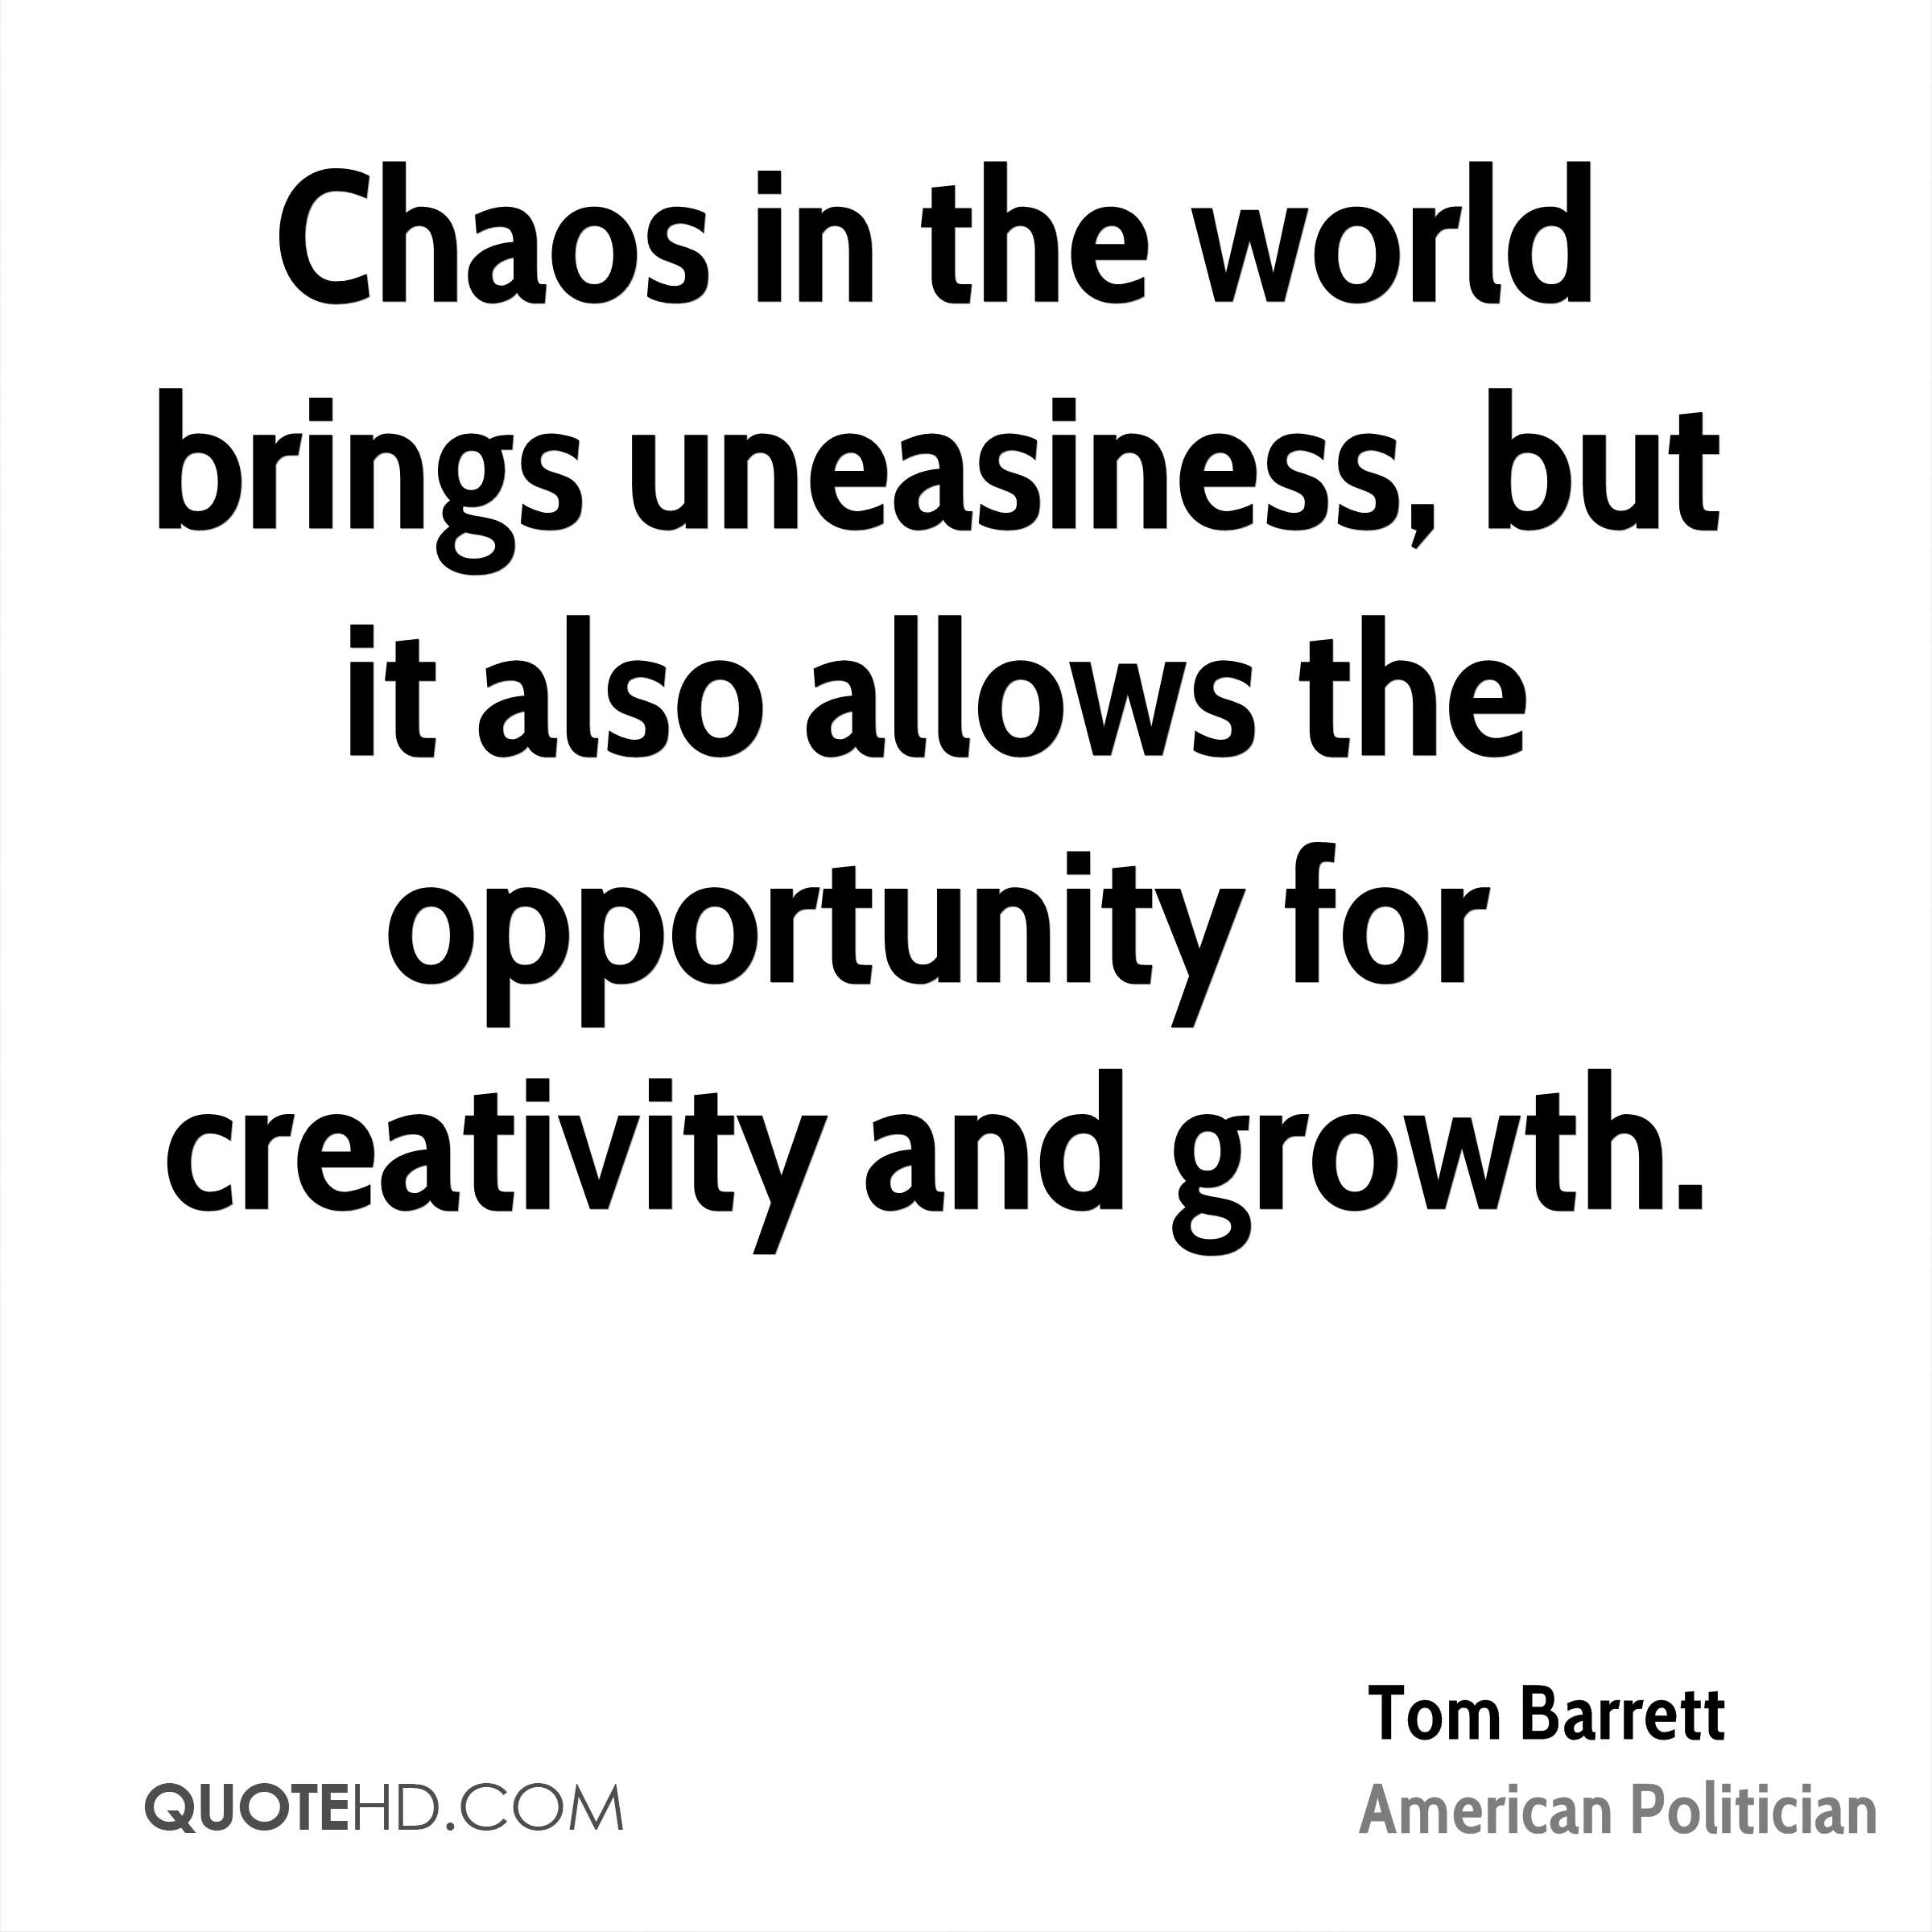 Chaos in the world brings uneasiness, but it also allows the opportunity for creativity and growth.